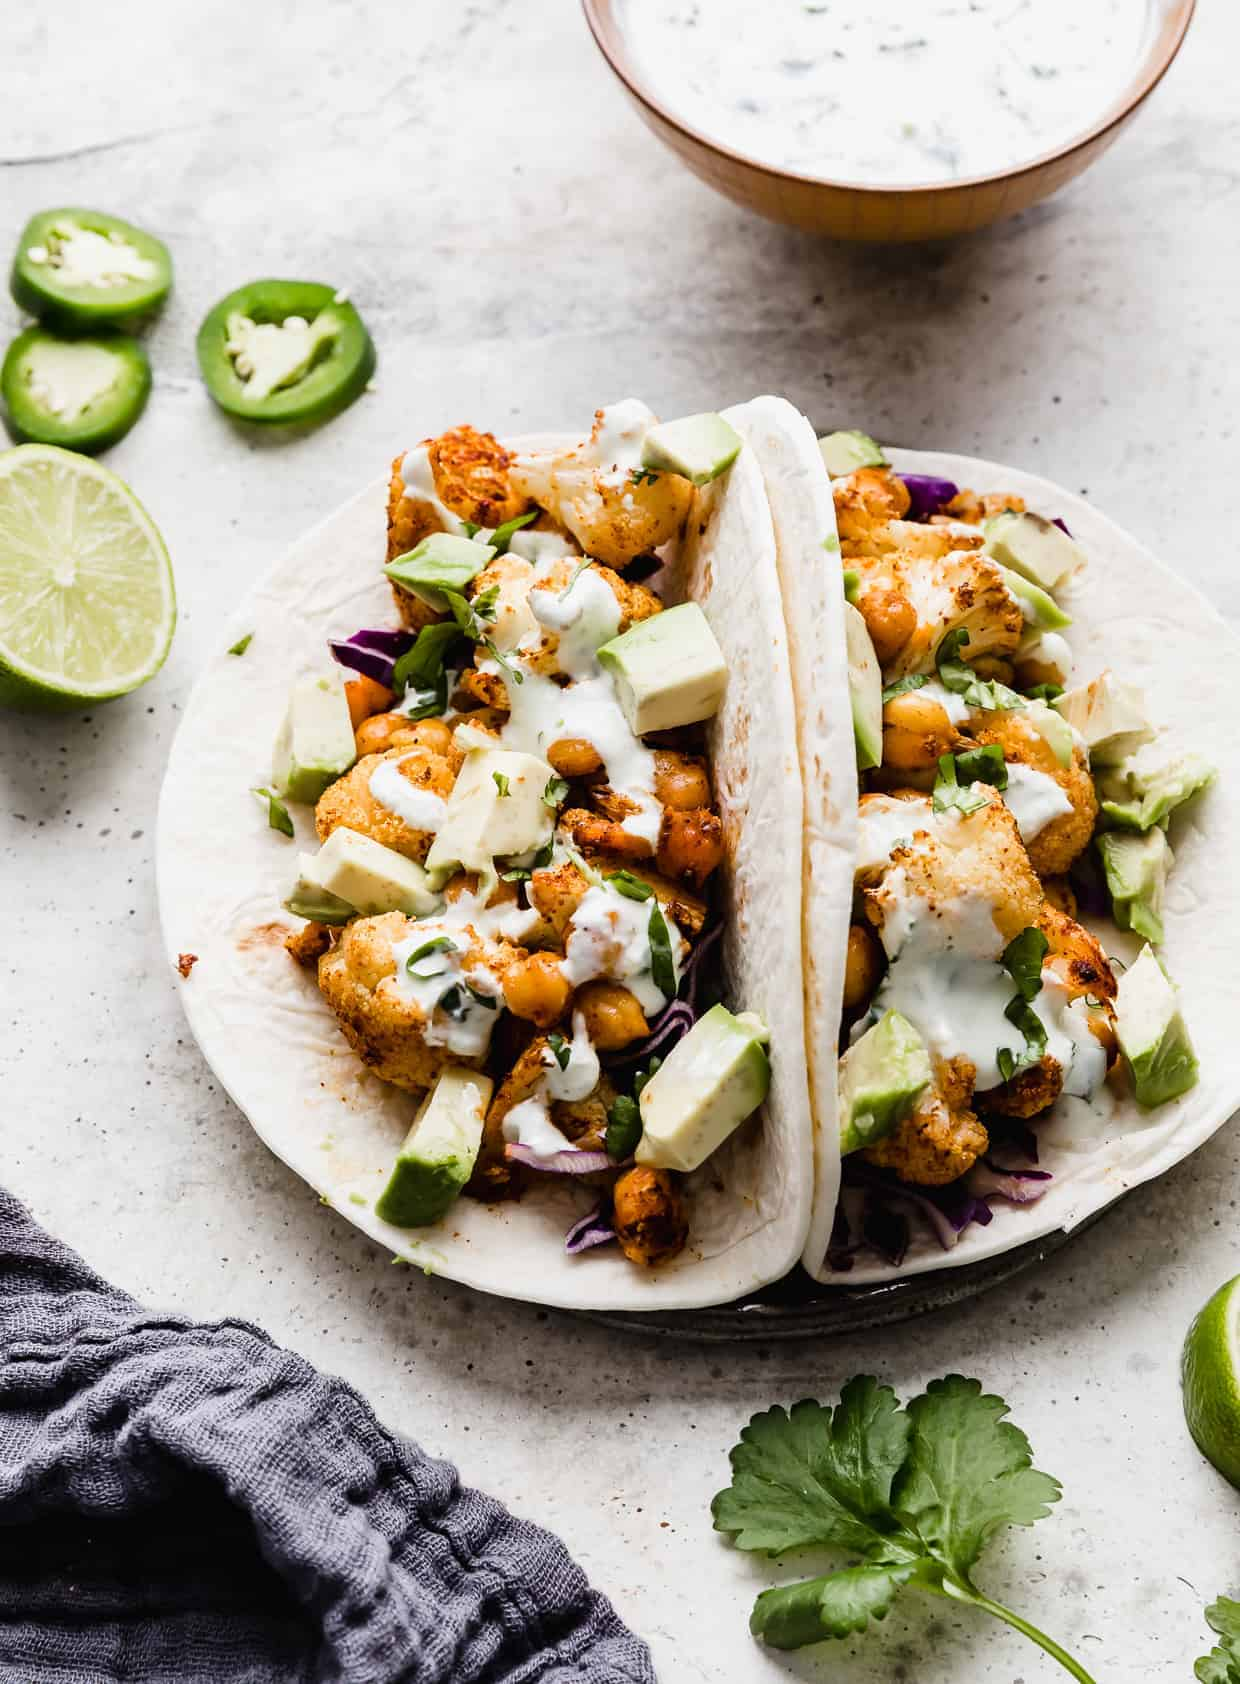 Two cauliflower tacos on a plate. A bowl of white sauce is in the background as well as sliced jalapeños.